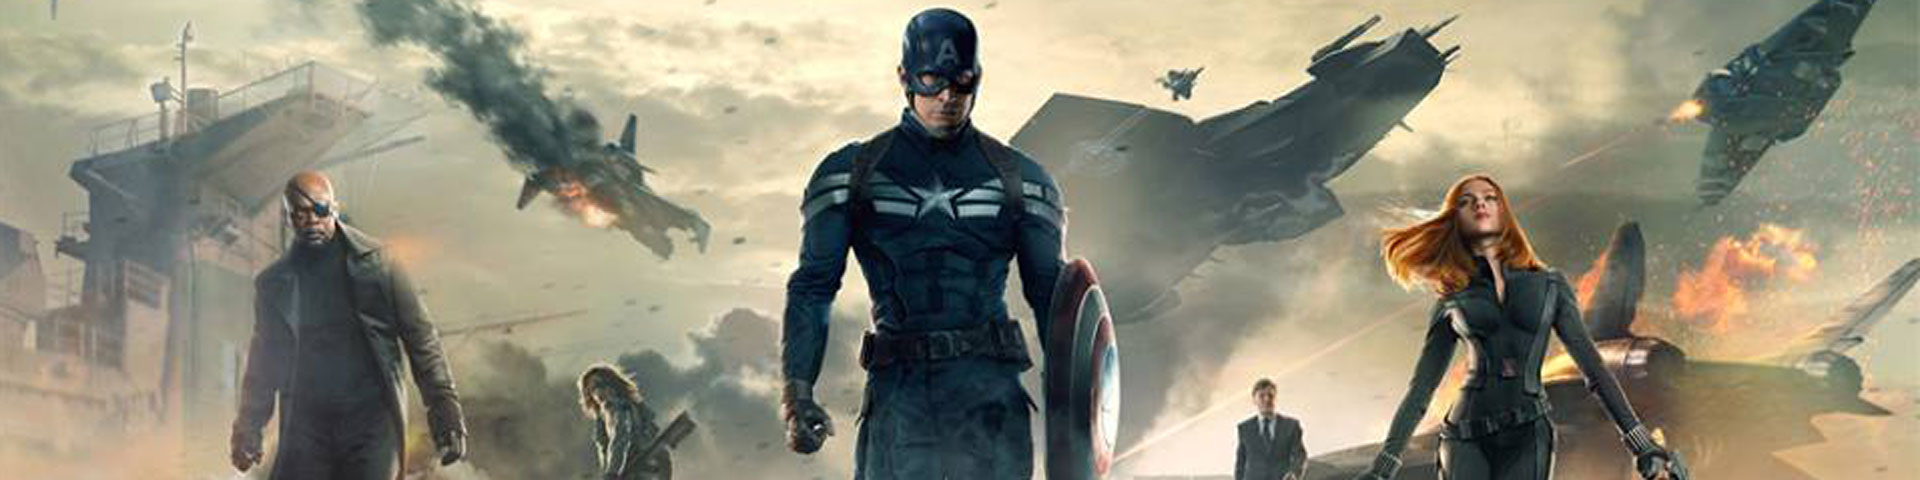 Captain America, in a dark blue uniform, is in the center of the photo while Nick Fury appears to the left and Black Widow to the right.